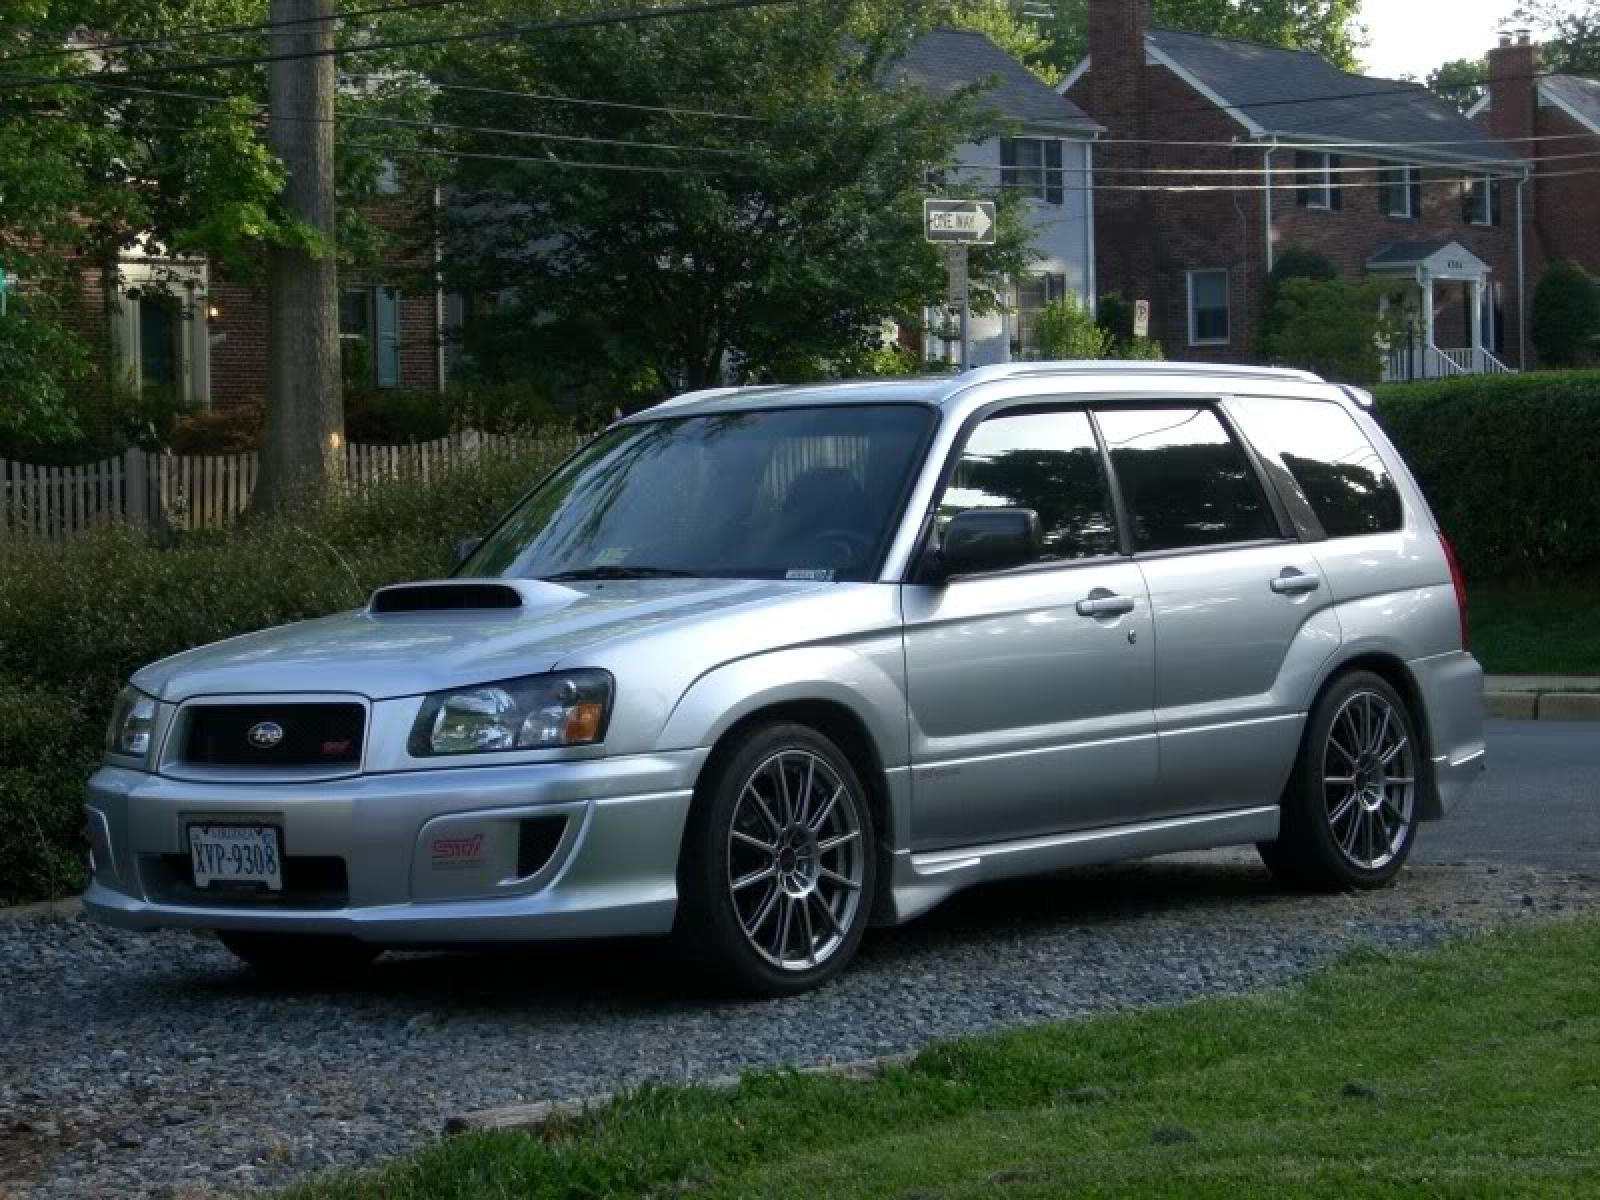 2004 subaru forester information and photos zombiedrive. Black Bedroom Furniture Sets. Home Design Ideas